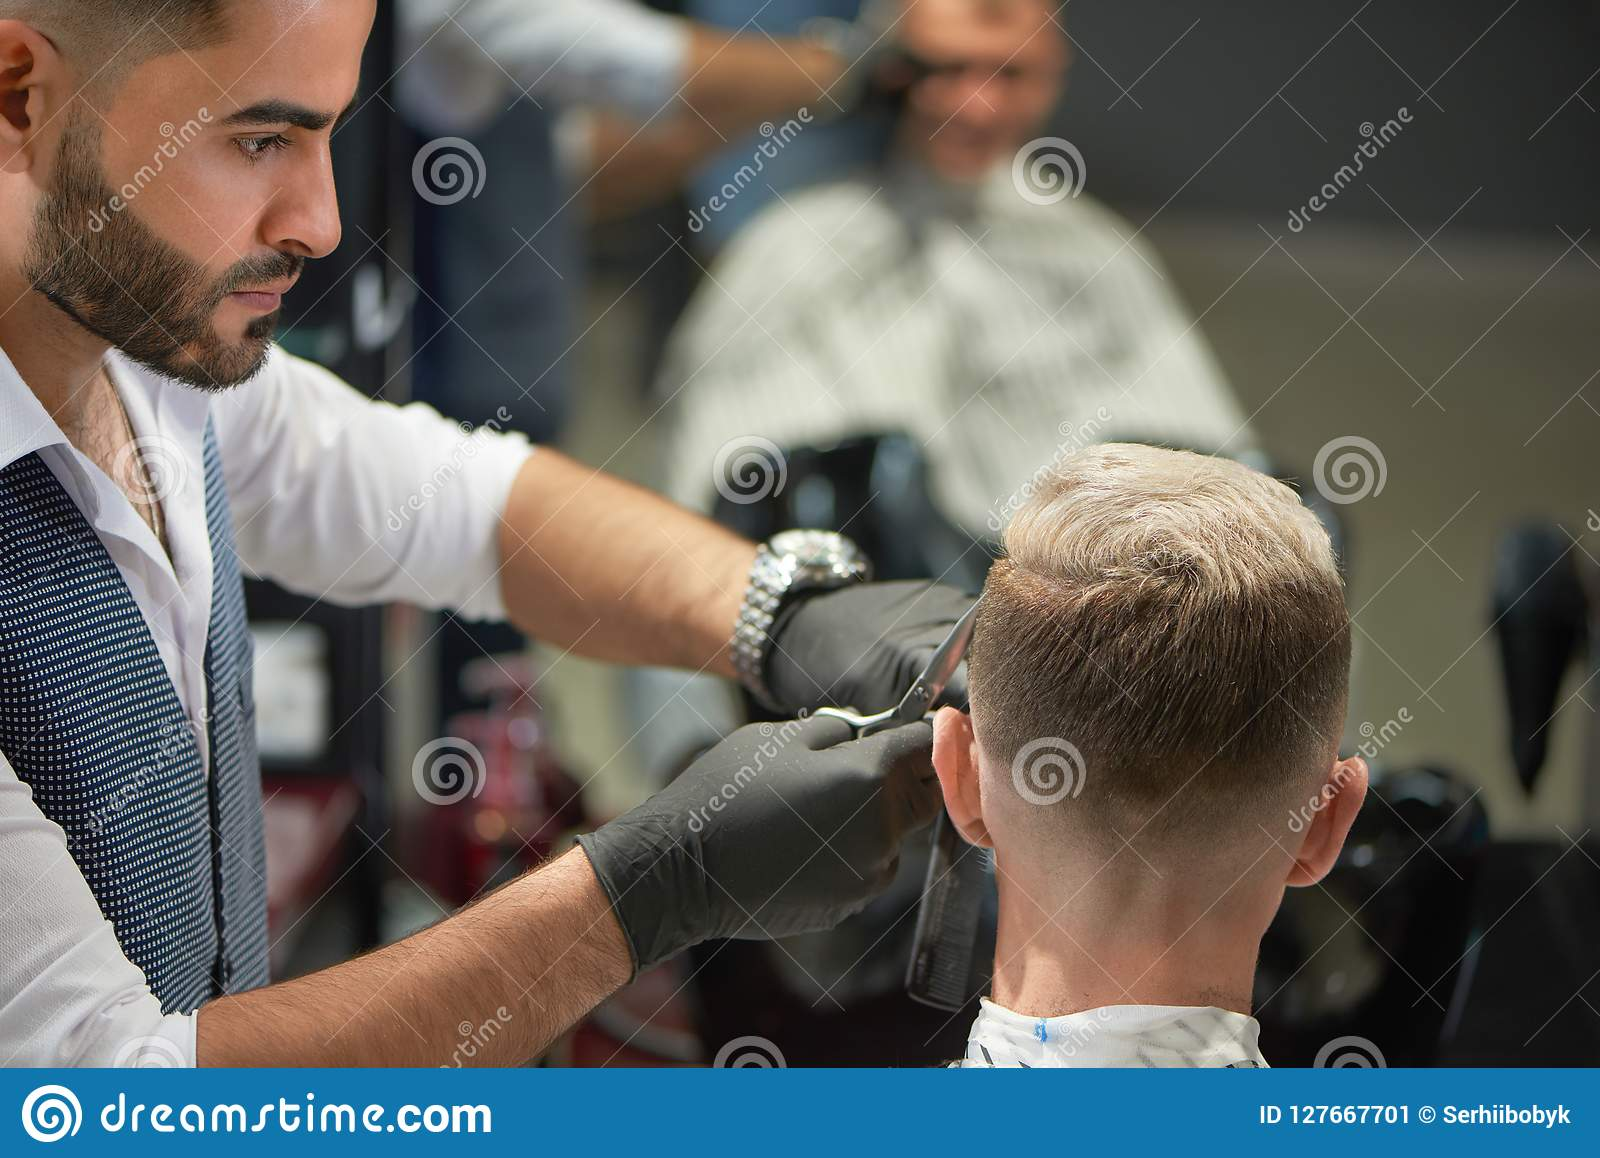 Handsome barber in black gloves cutting haircut of man using scissors.